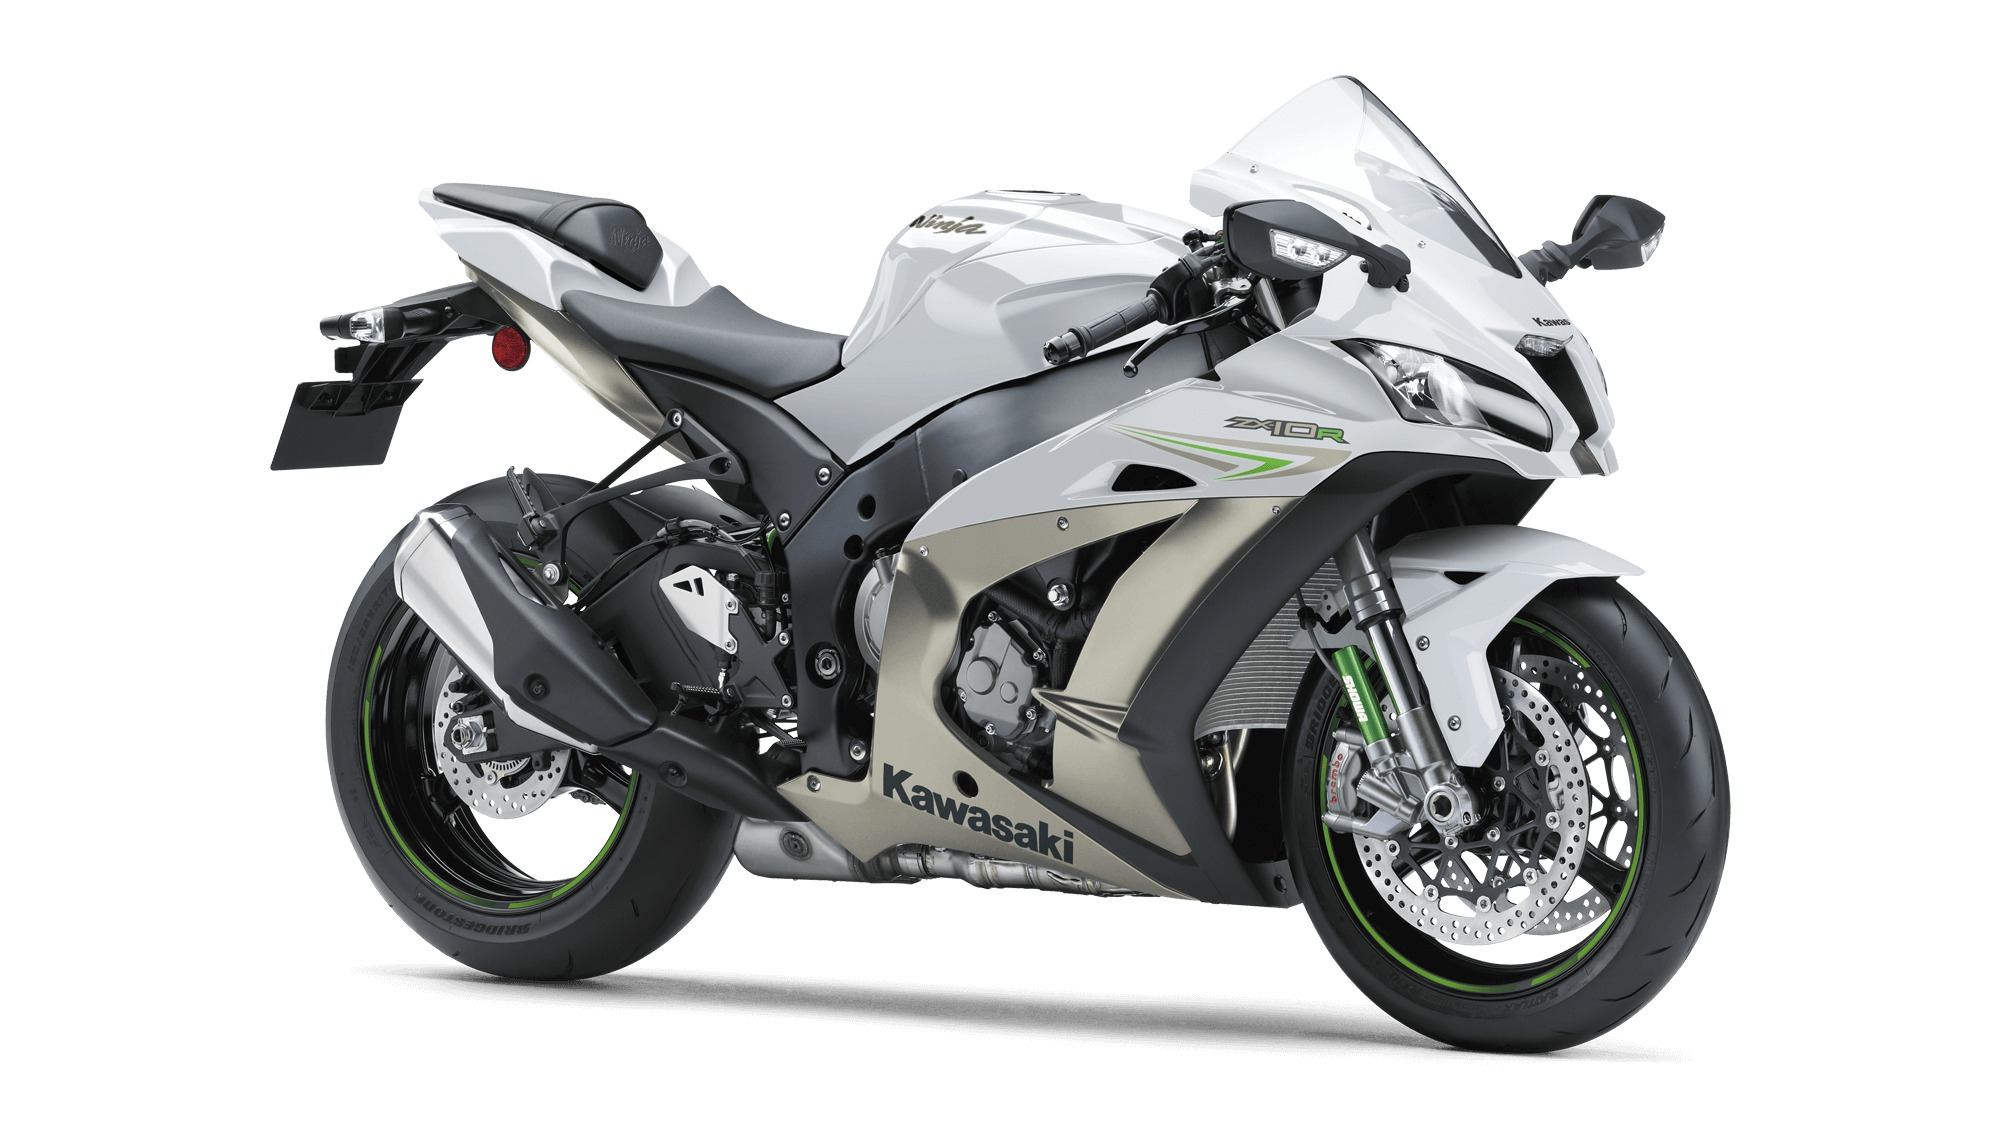 Kawasaki NINJA ZX-10R 30TH ANNIVERSARY Motorcycles for sale